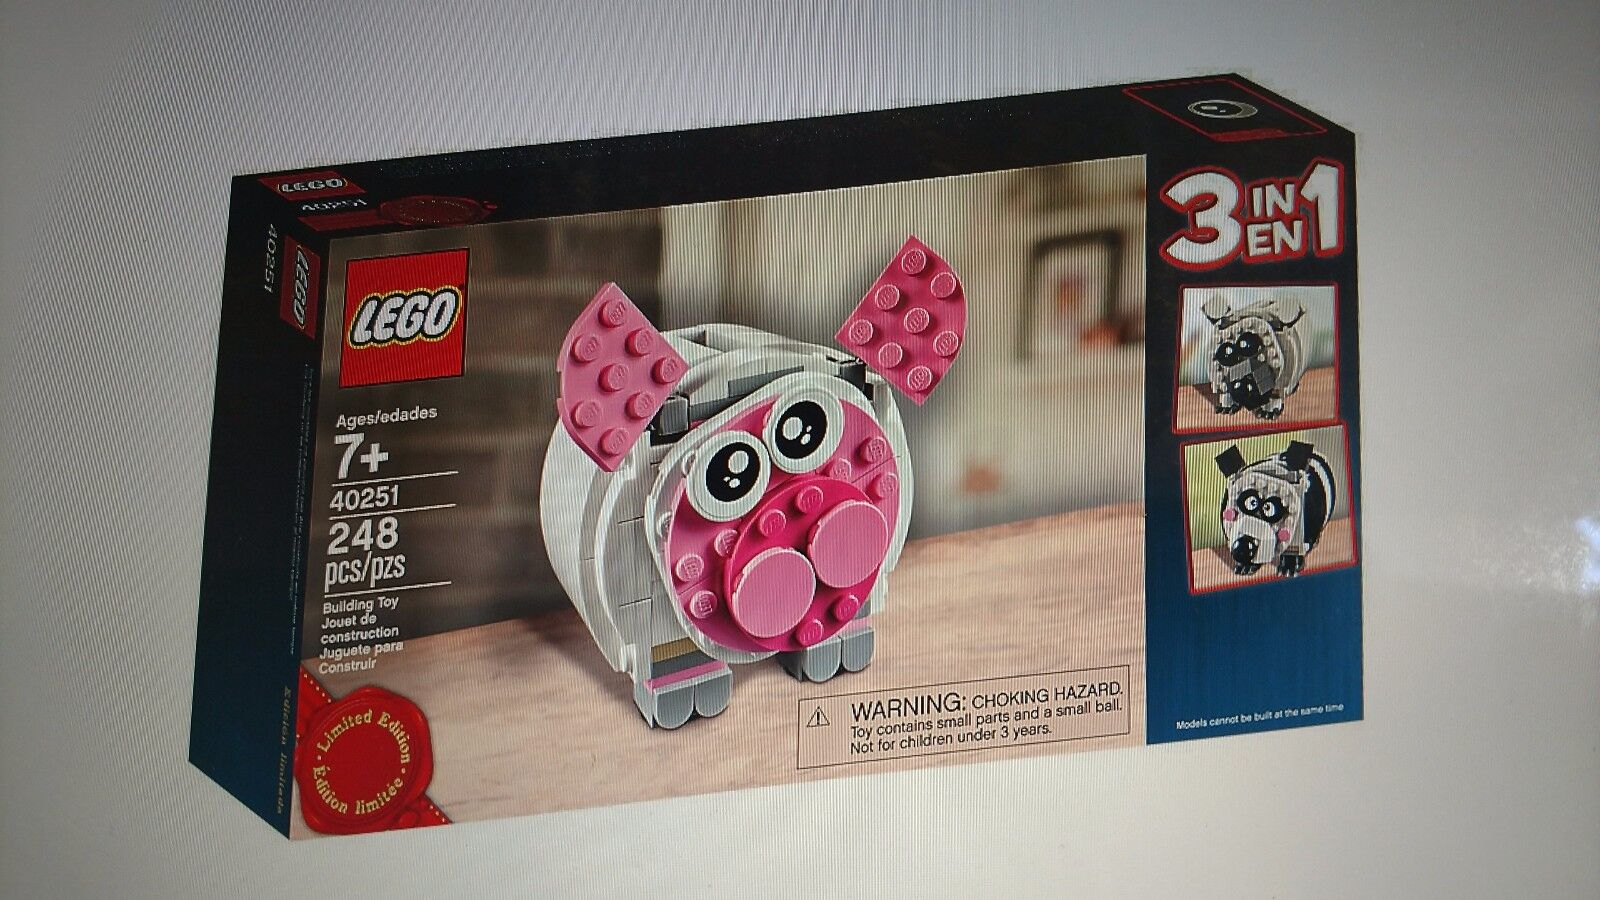 Neues Neues Neues lego 40251 3 in 1 sparschwein promo - 248 - pcs limited edition    free shipping   c72b49